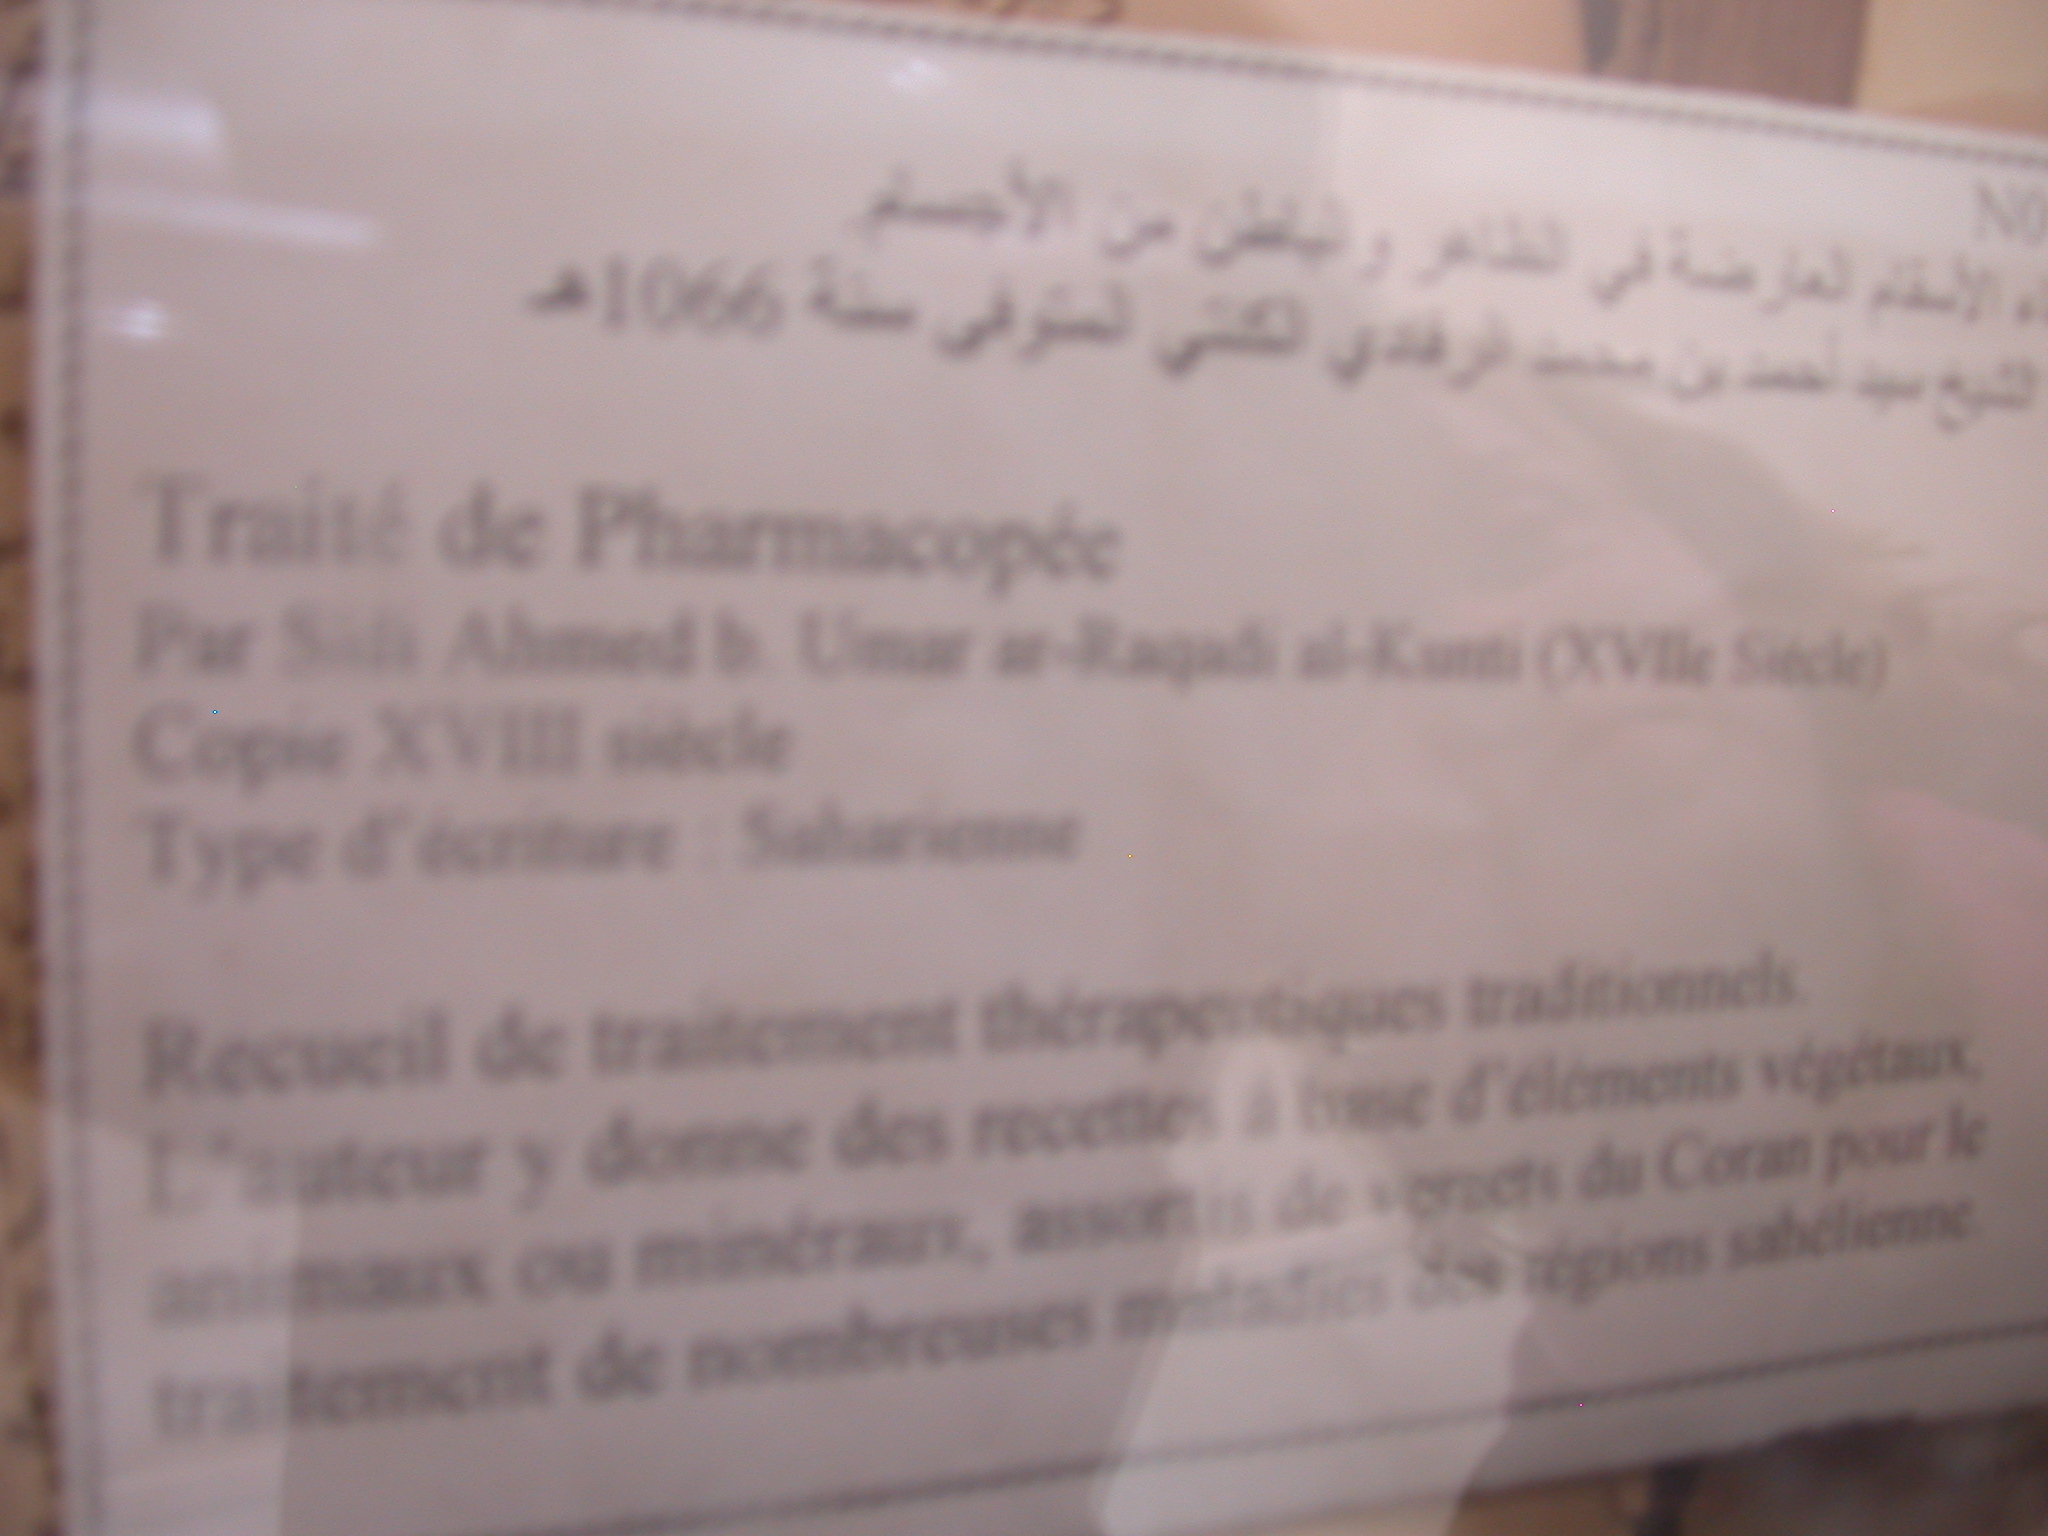 Manuscript, Pharmaceutical Treatise, Written 17th Century, Copied 18th Century, Ahmed Baba Institute, Institut des Hautes Etudes et de Recherches Islamiques, Timbuktu, Mali